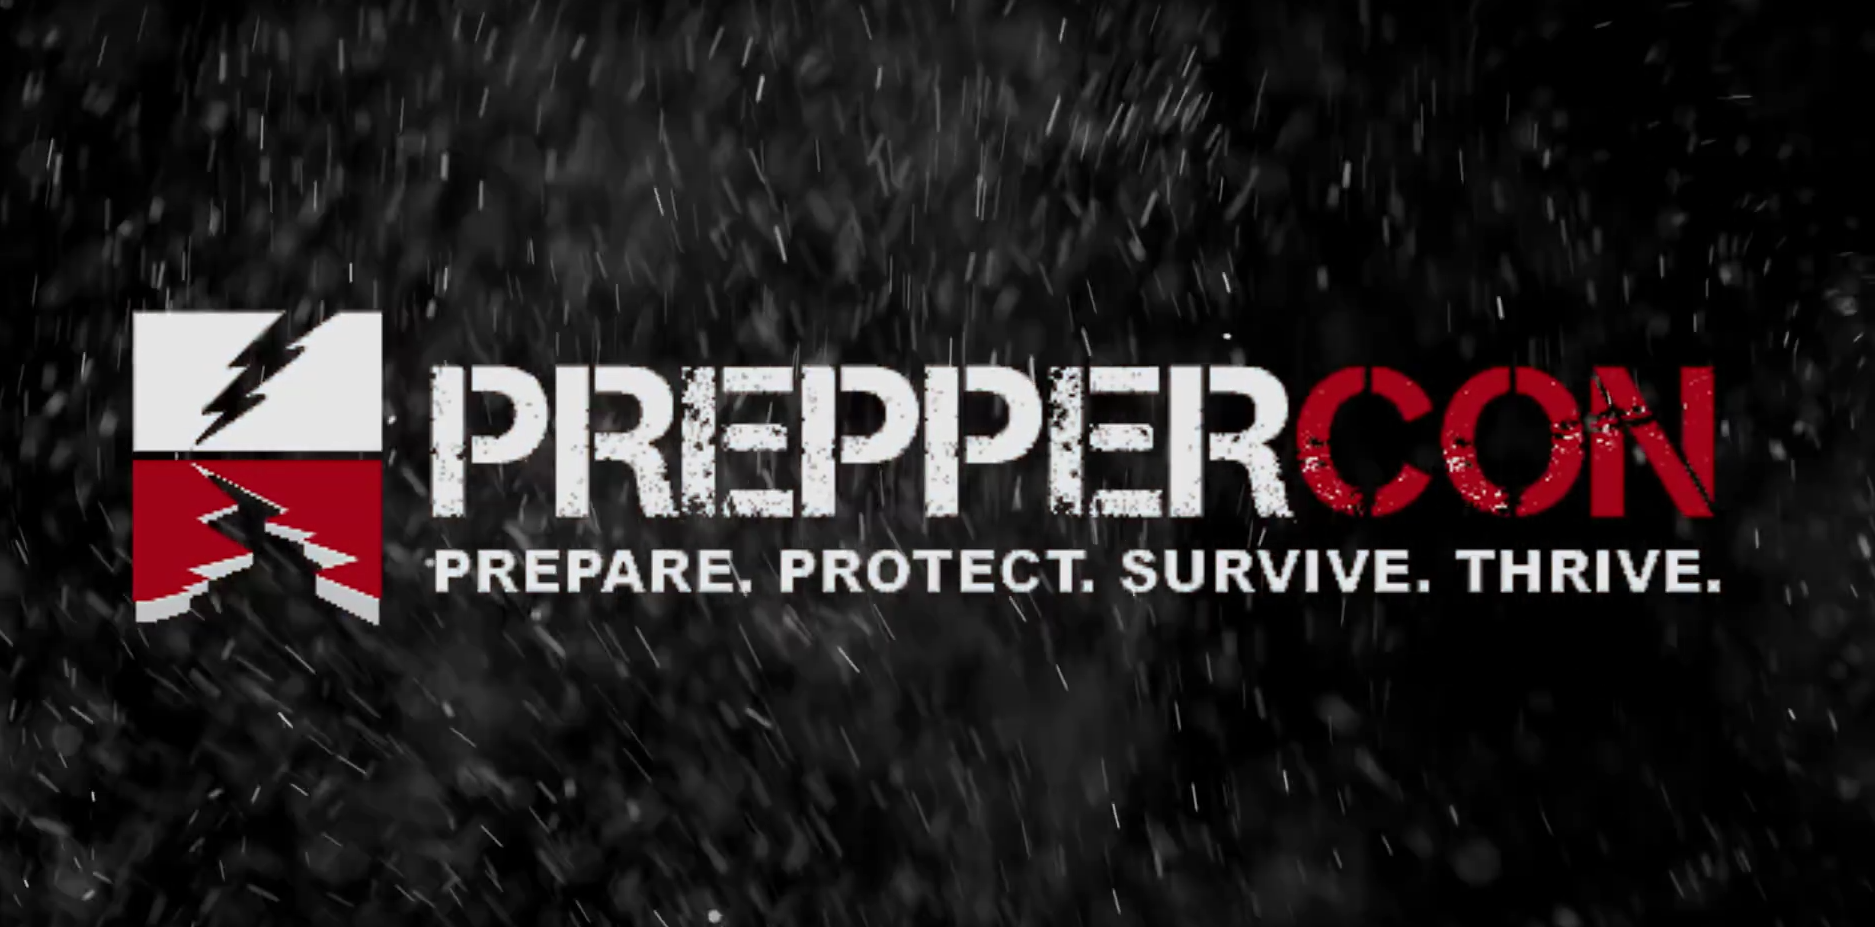 PREPPERCON.COM - Event Promo. Producer/Editor by Tom Laughlin